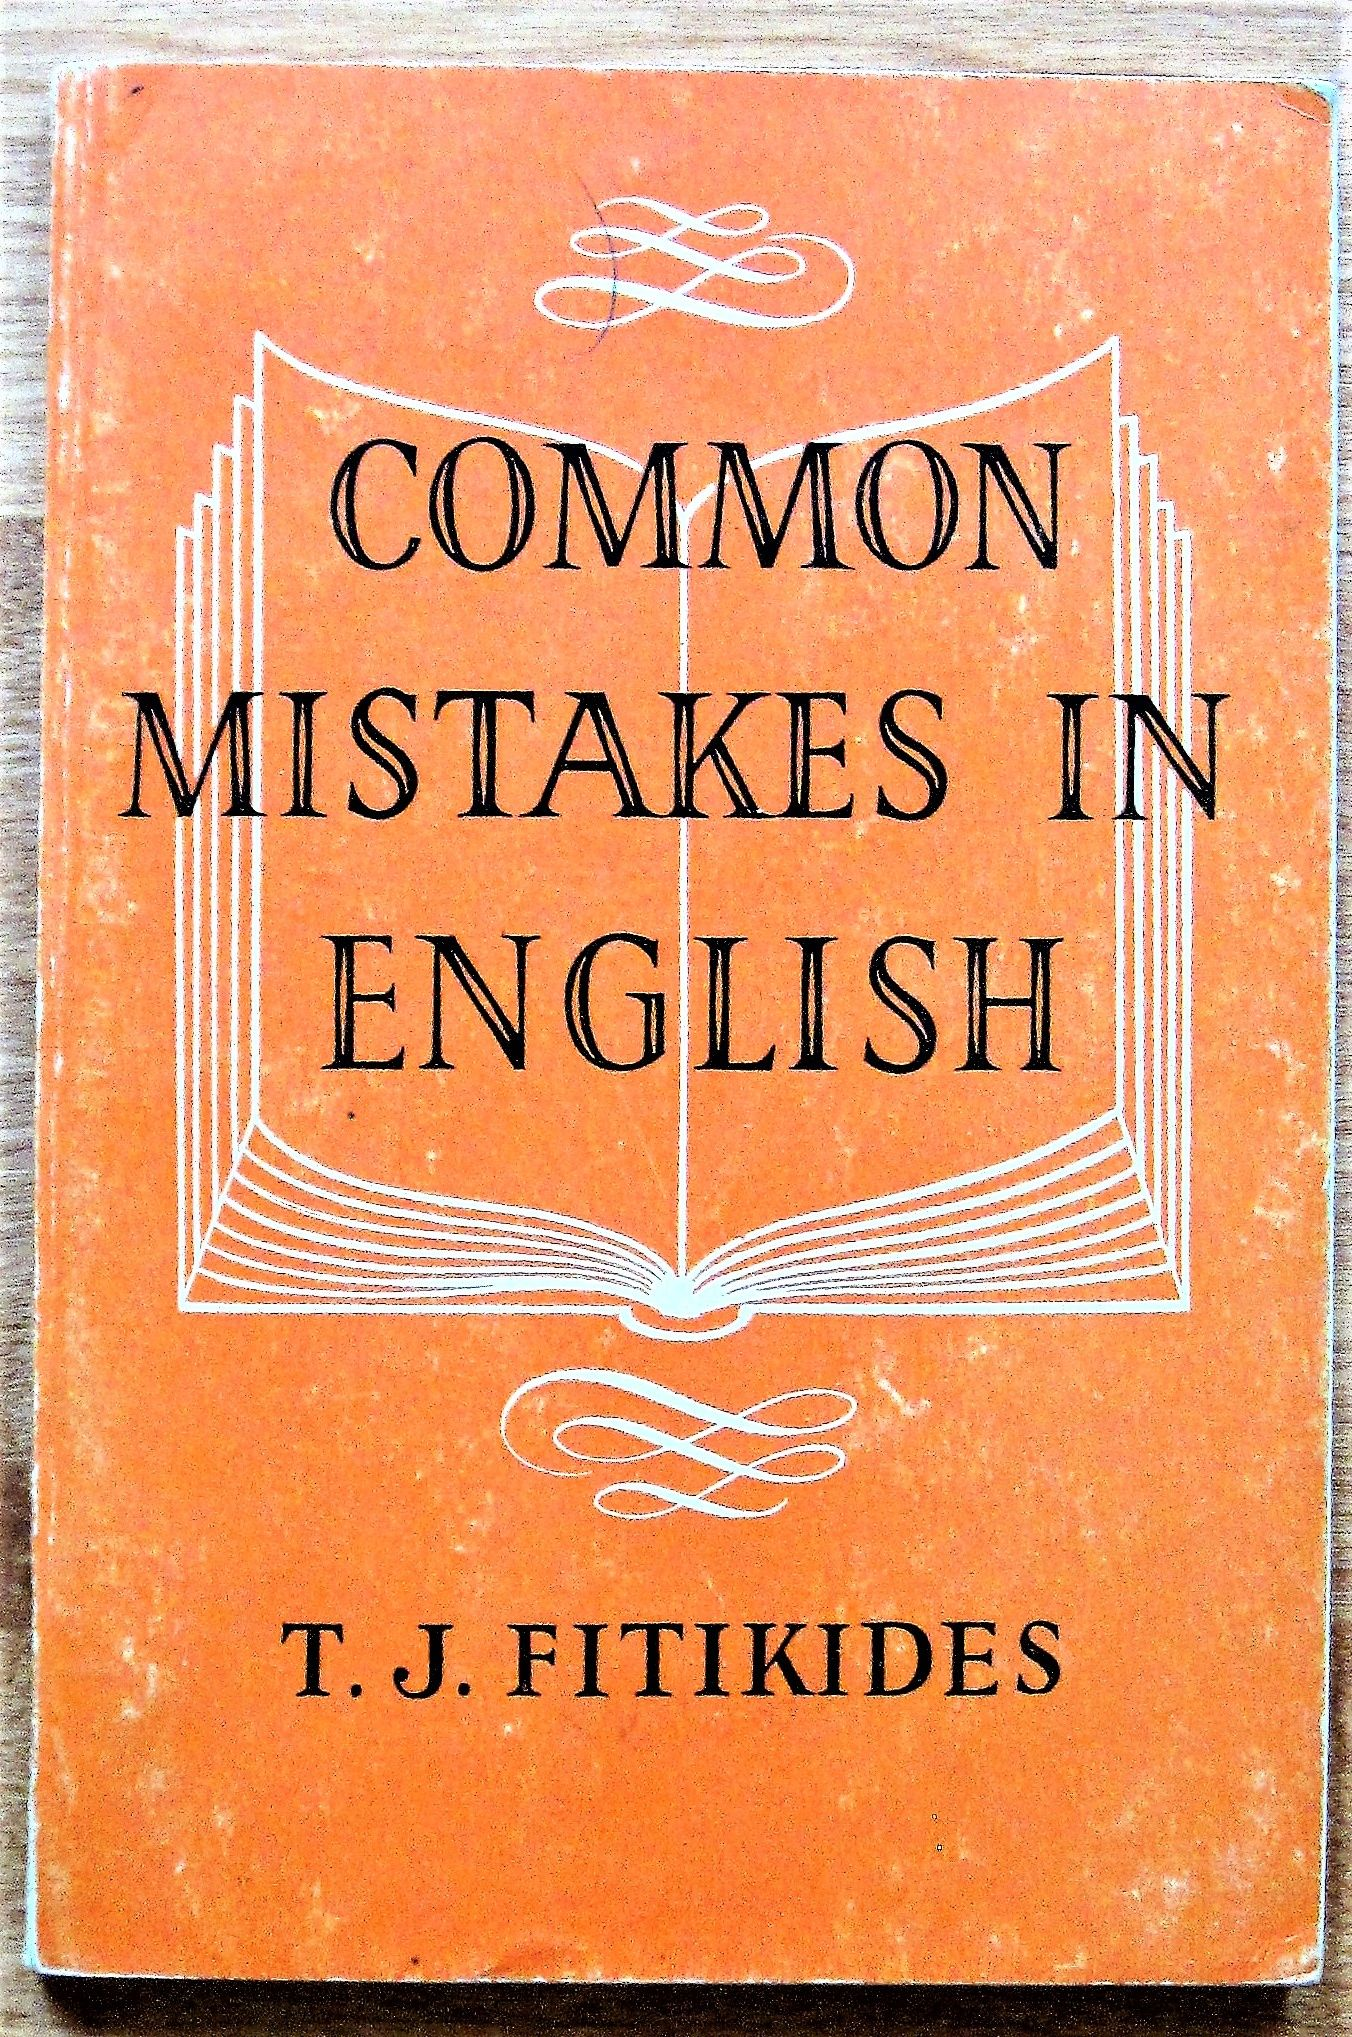 common mistakes in english t j fitikides